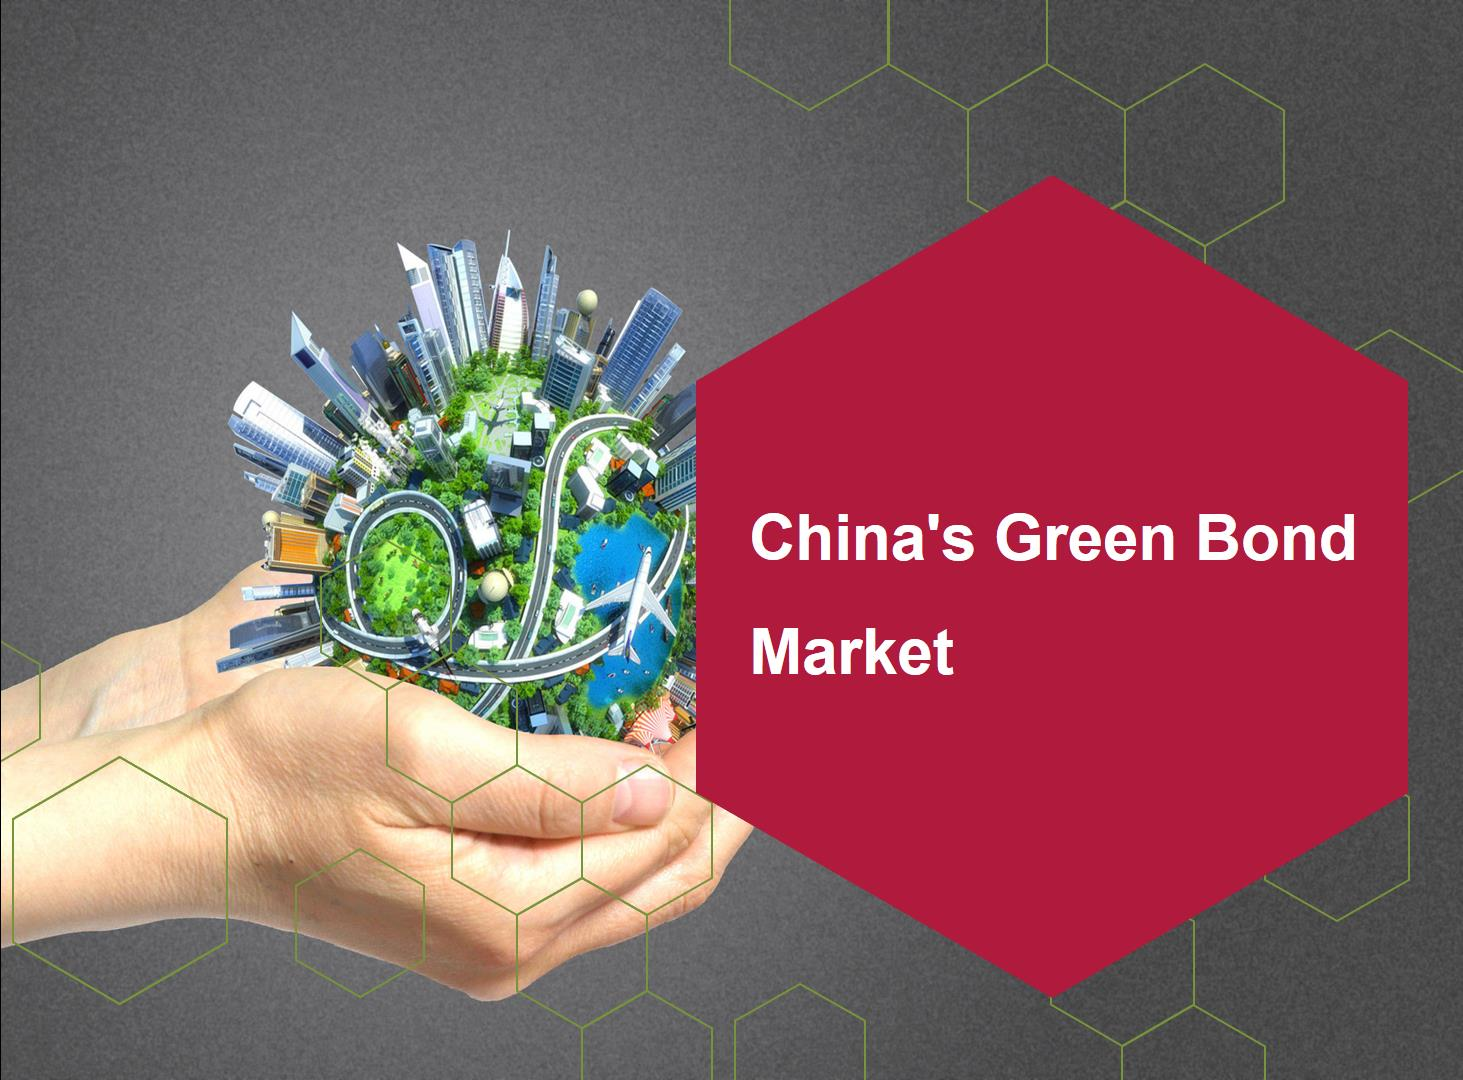 China's Green Bond Market